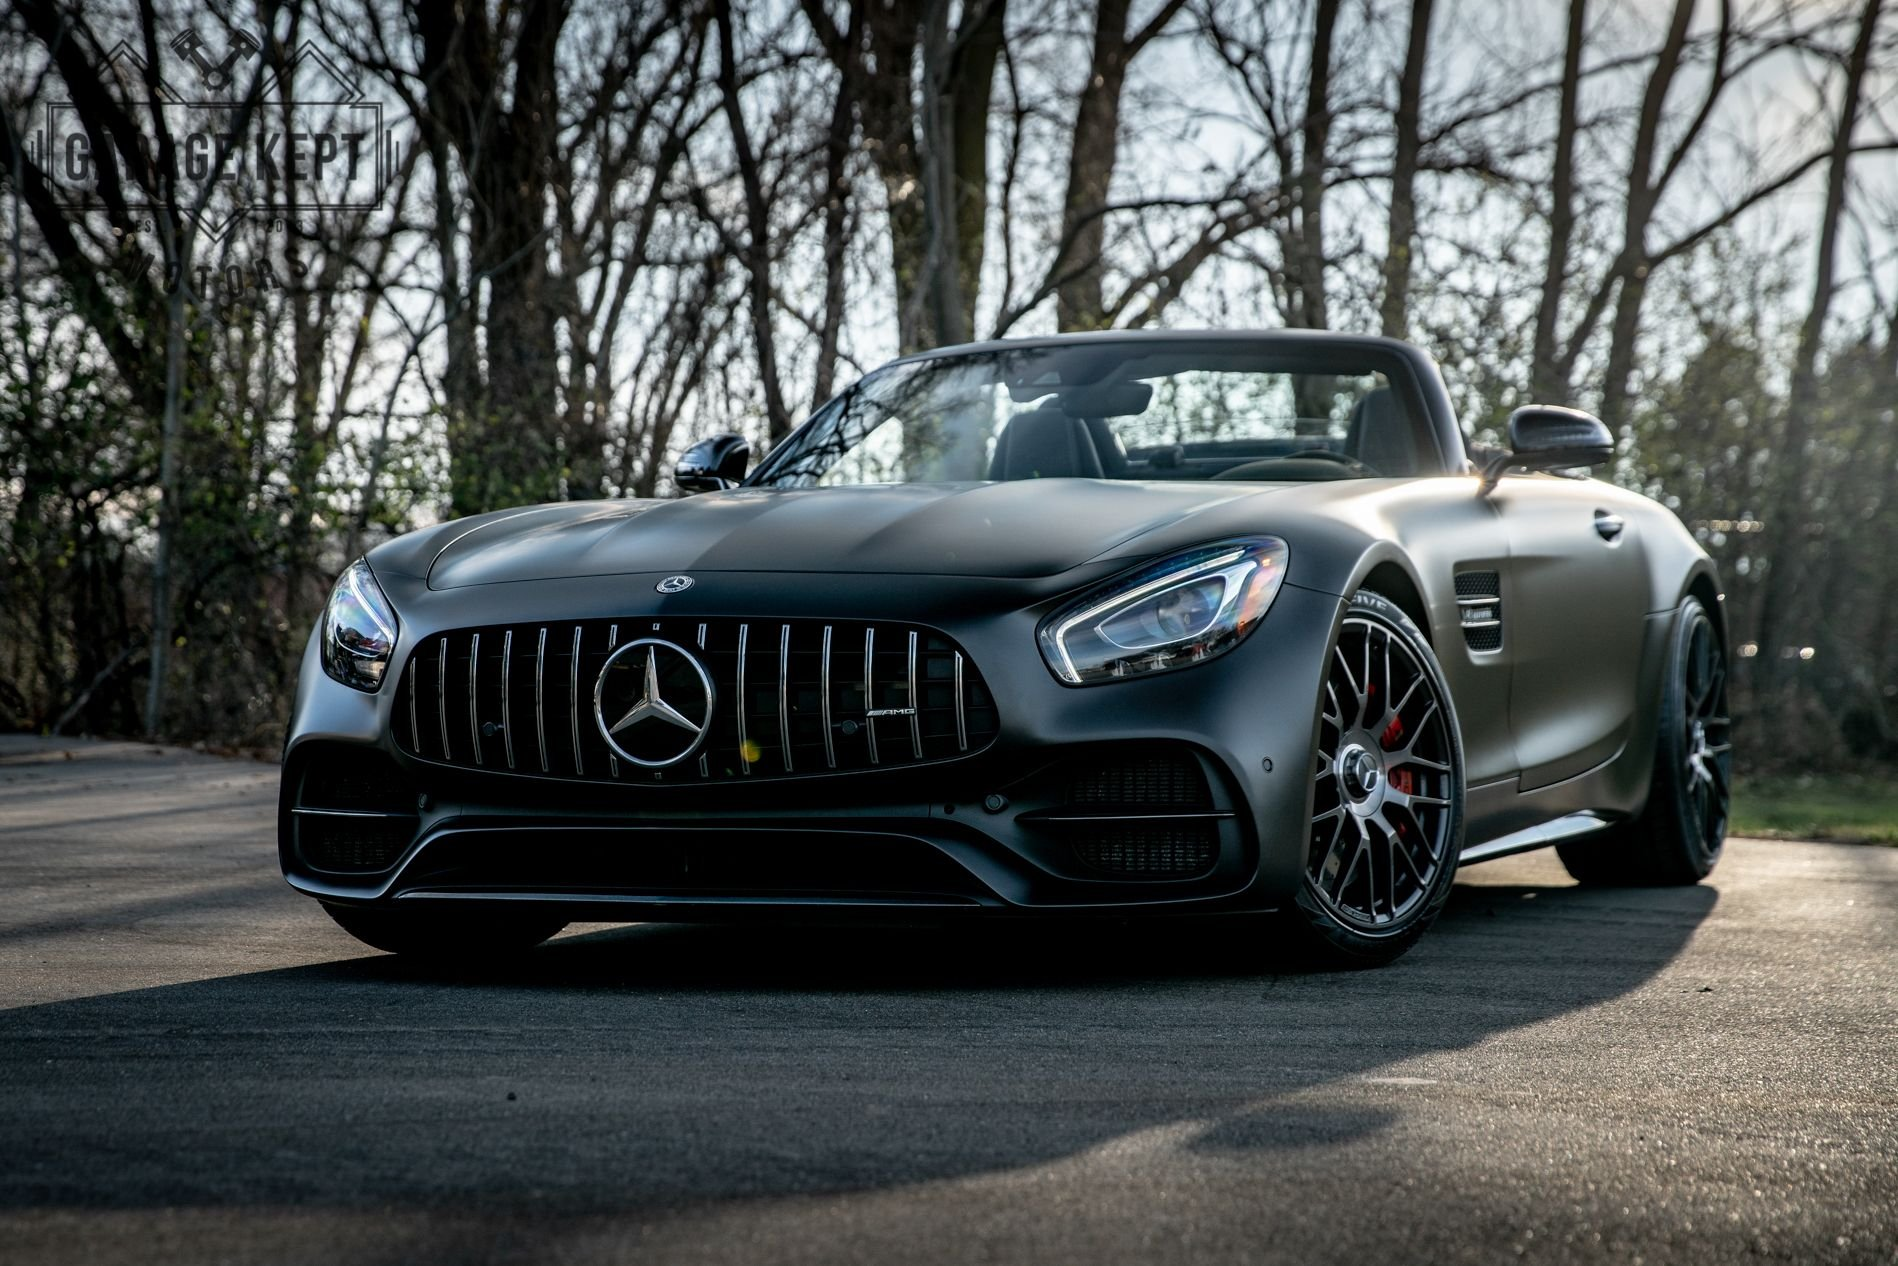 2018 Mercedes Benz Amg Gt C Roadster Edition 50 For Sale 216055 Motorious